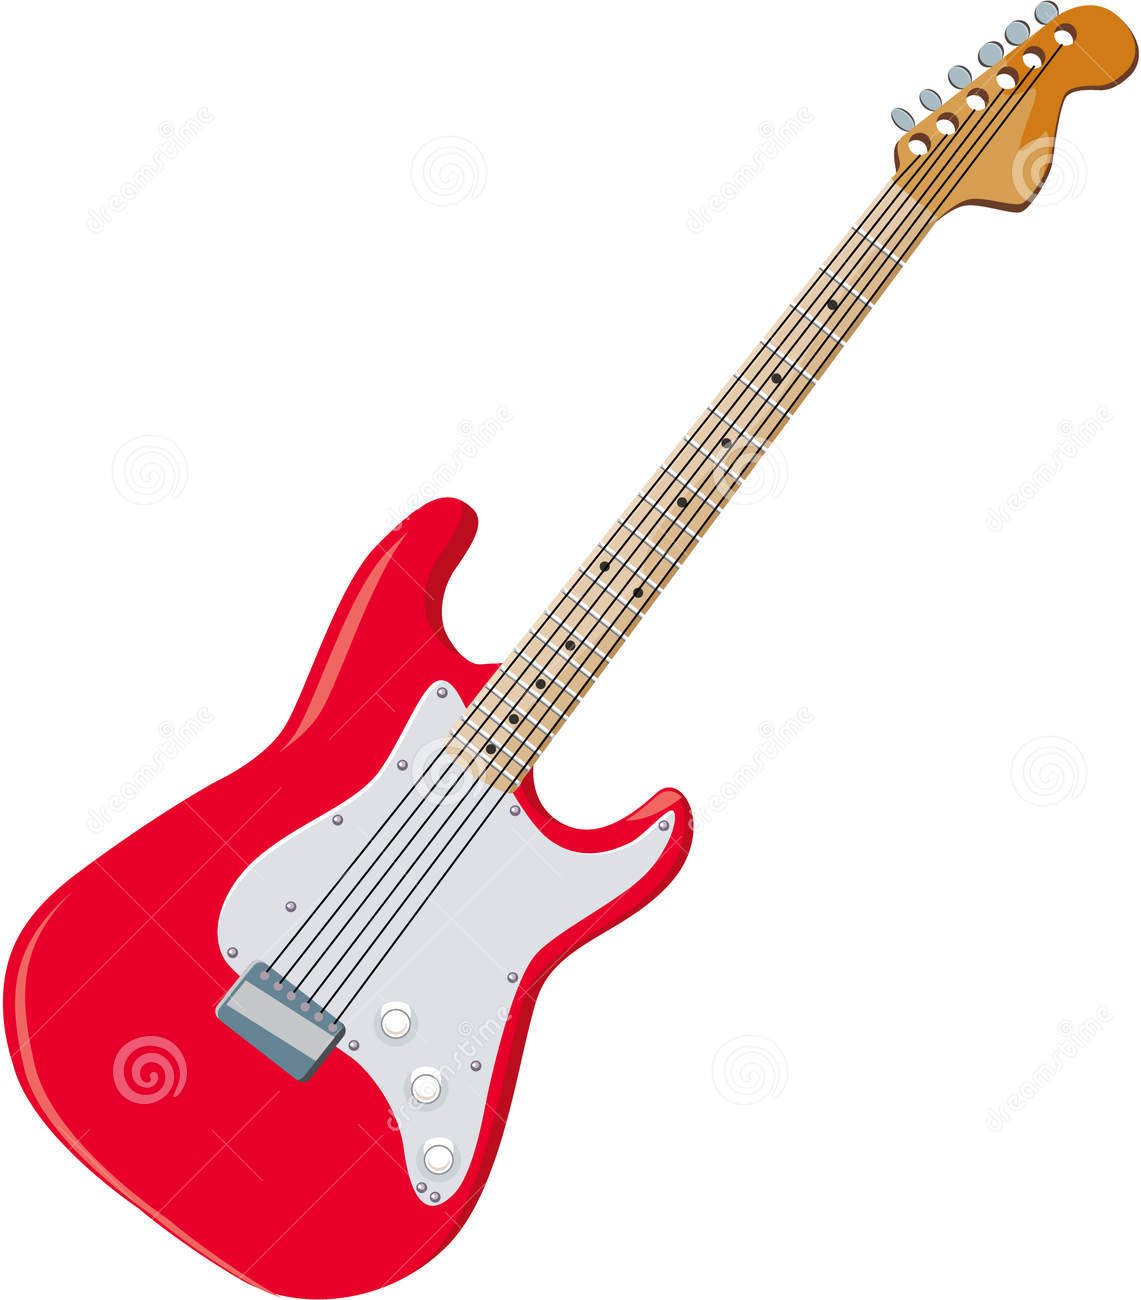 red guitar clipart 20 free cliparts download images on clipground 2019. Black Bedroom Furniture Sets. Home Design Ideas